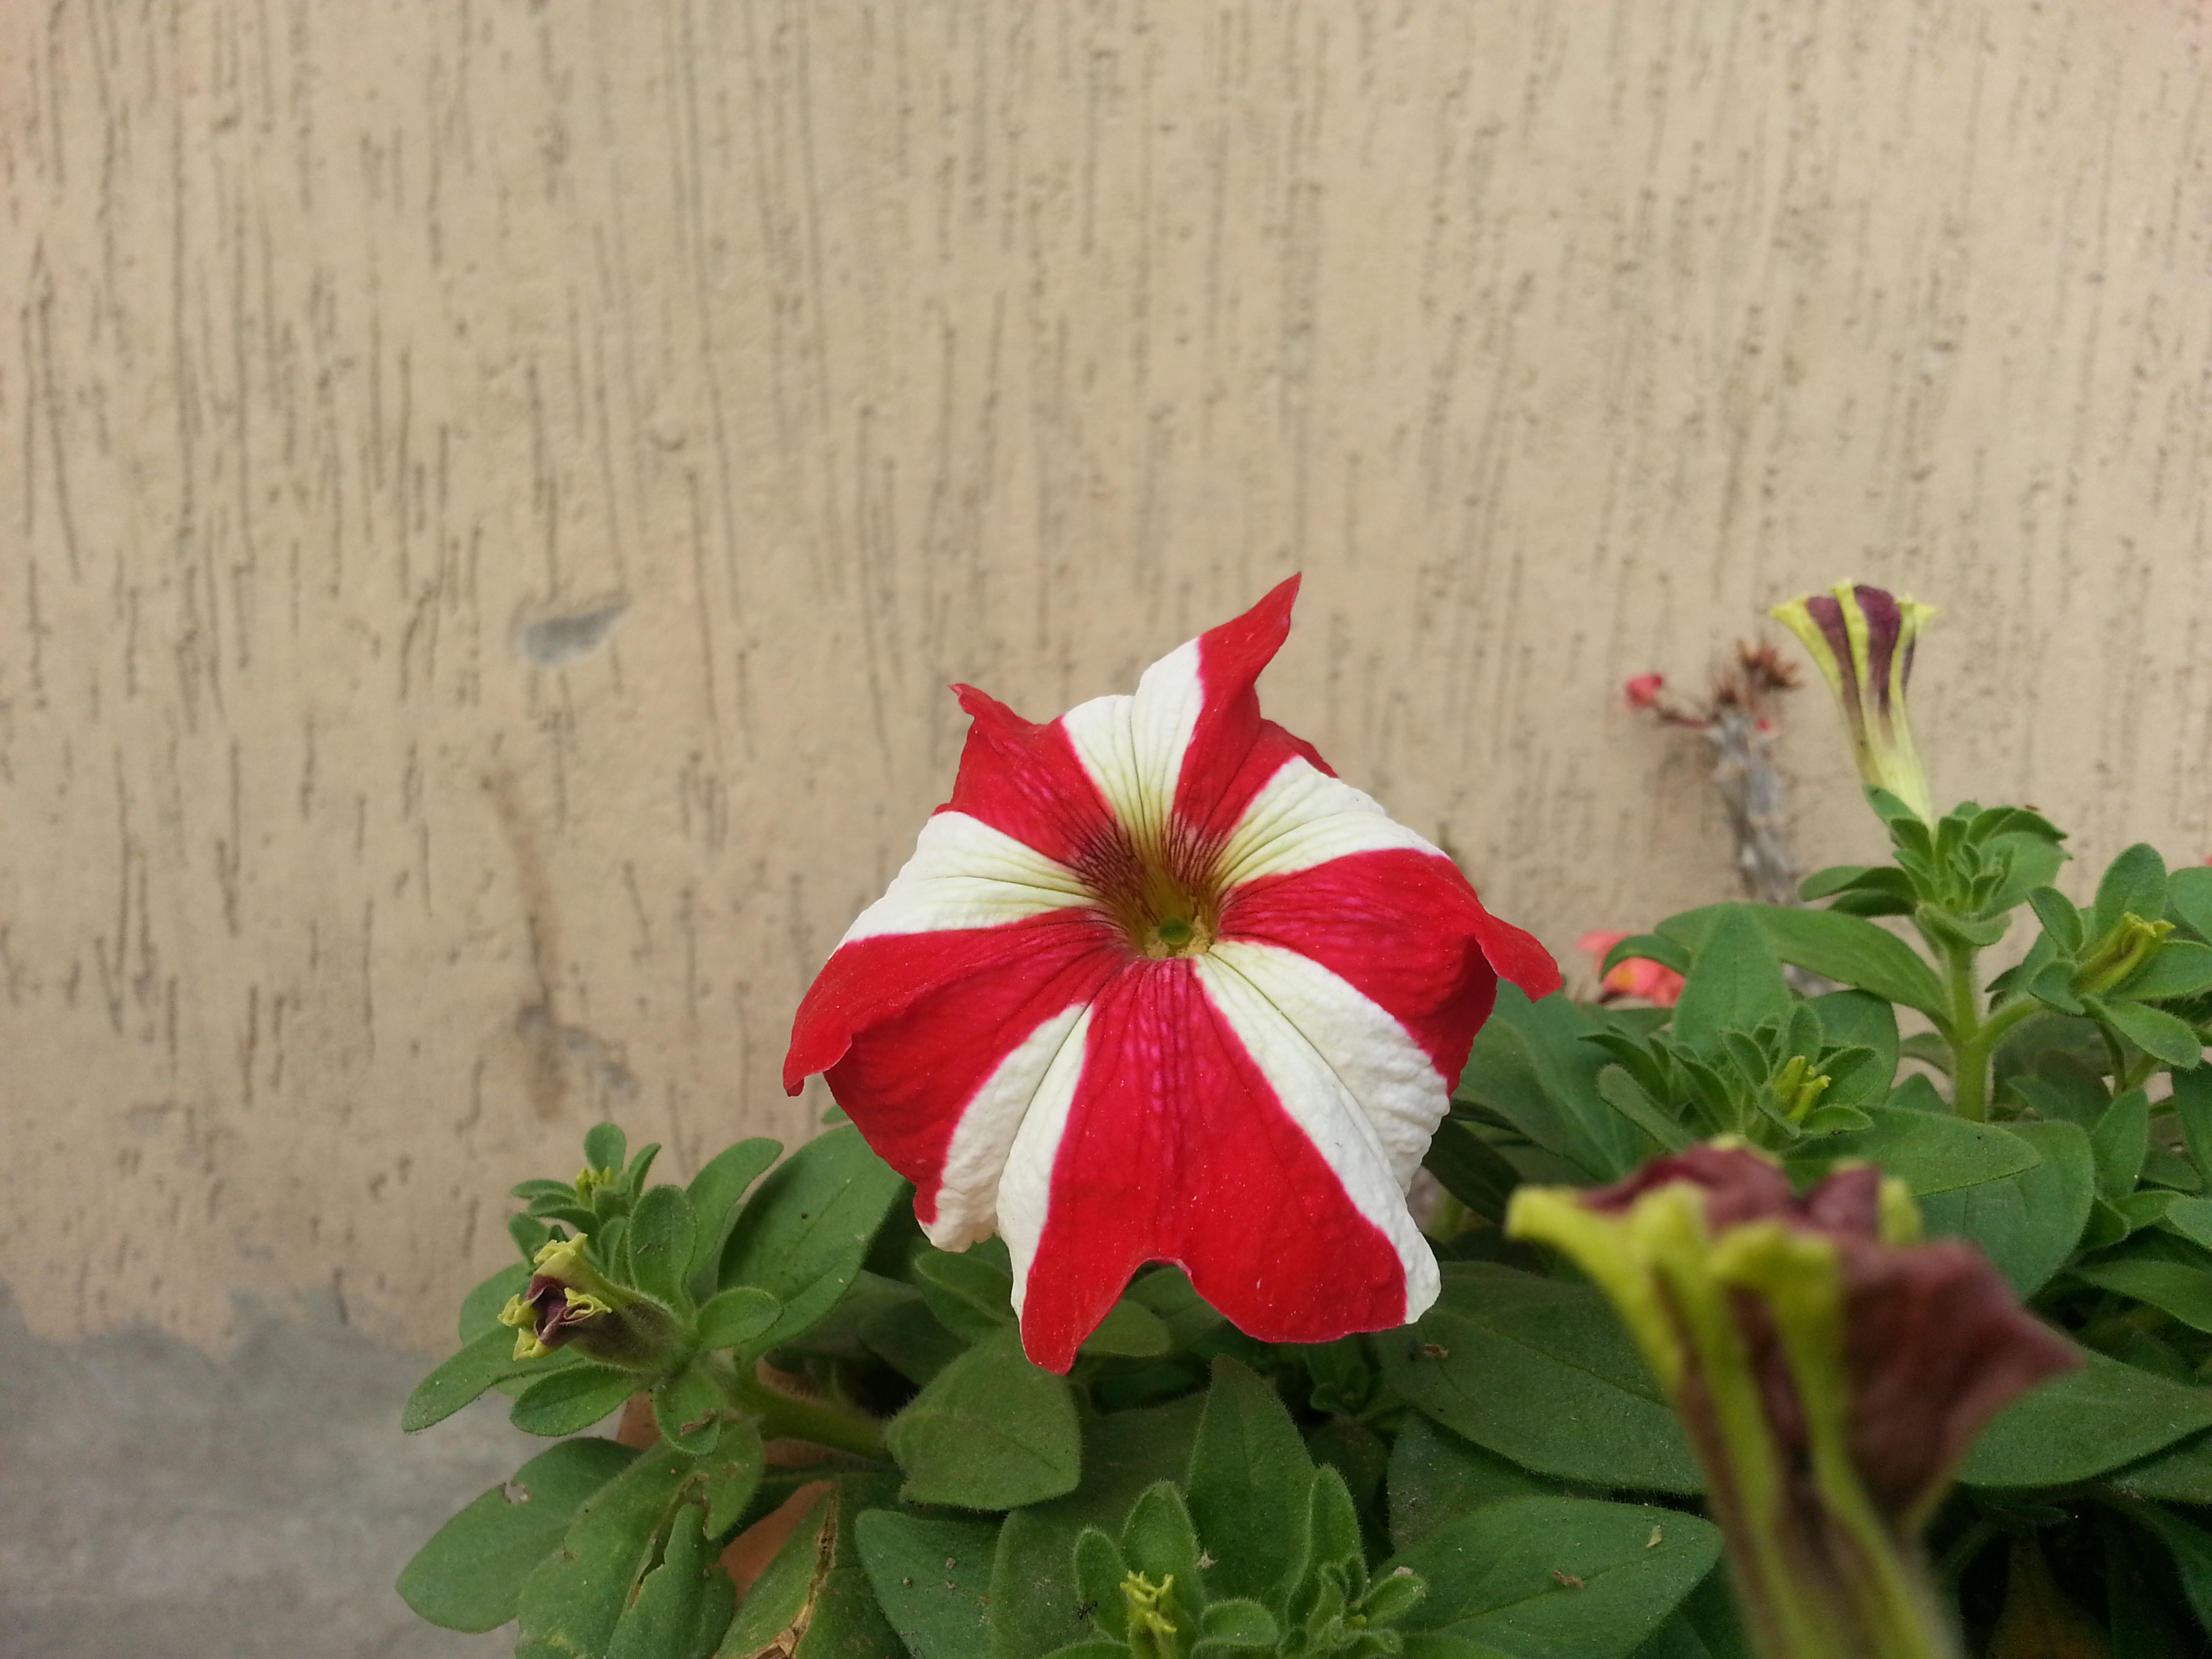 Lumia 920 vs Galaxy Note 2: Camera Comparison Sample Shots 13